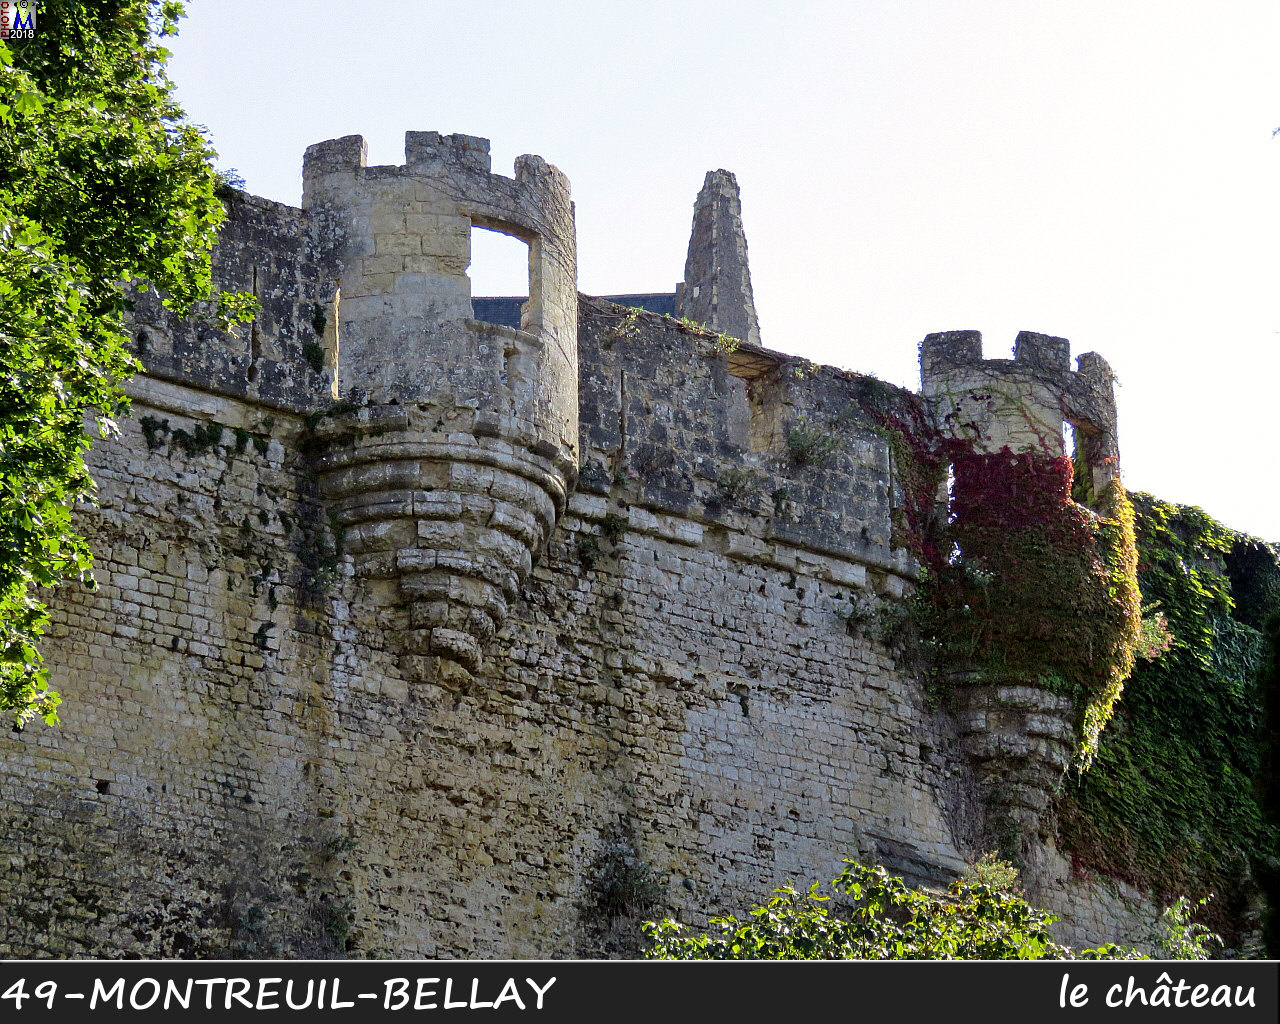 49MONTREUIL-BELLAY_chateau_1064.jpg